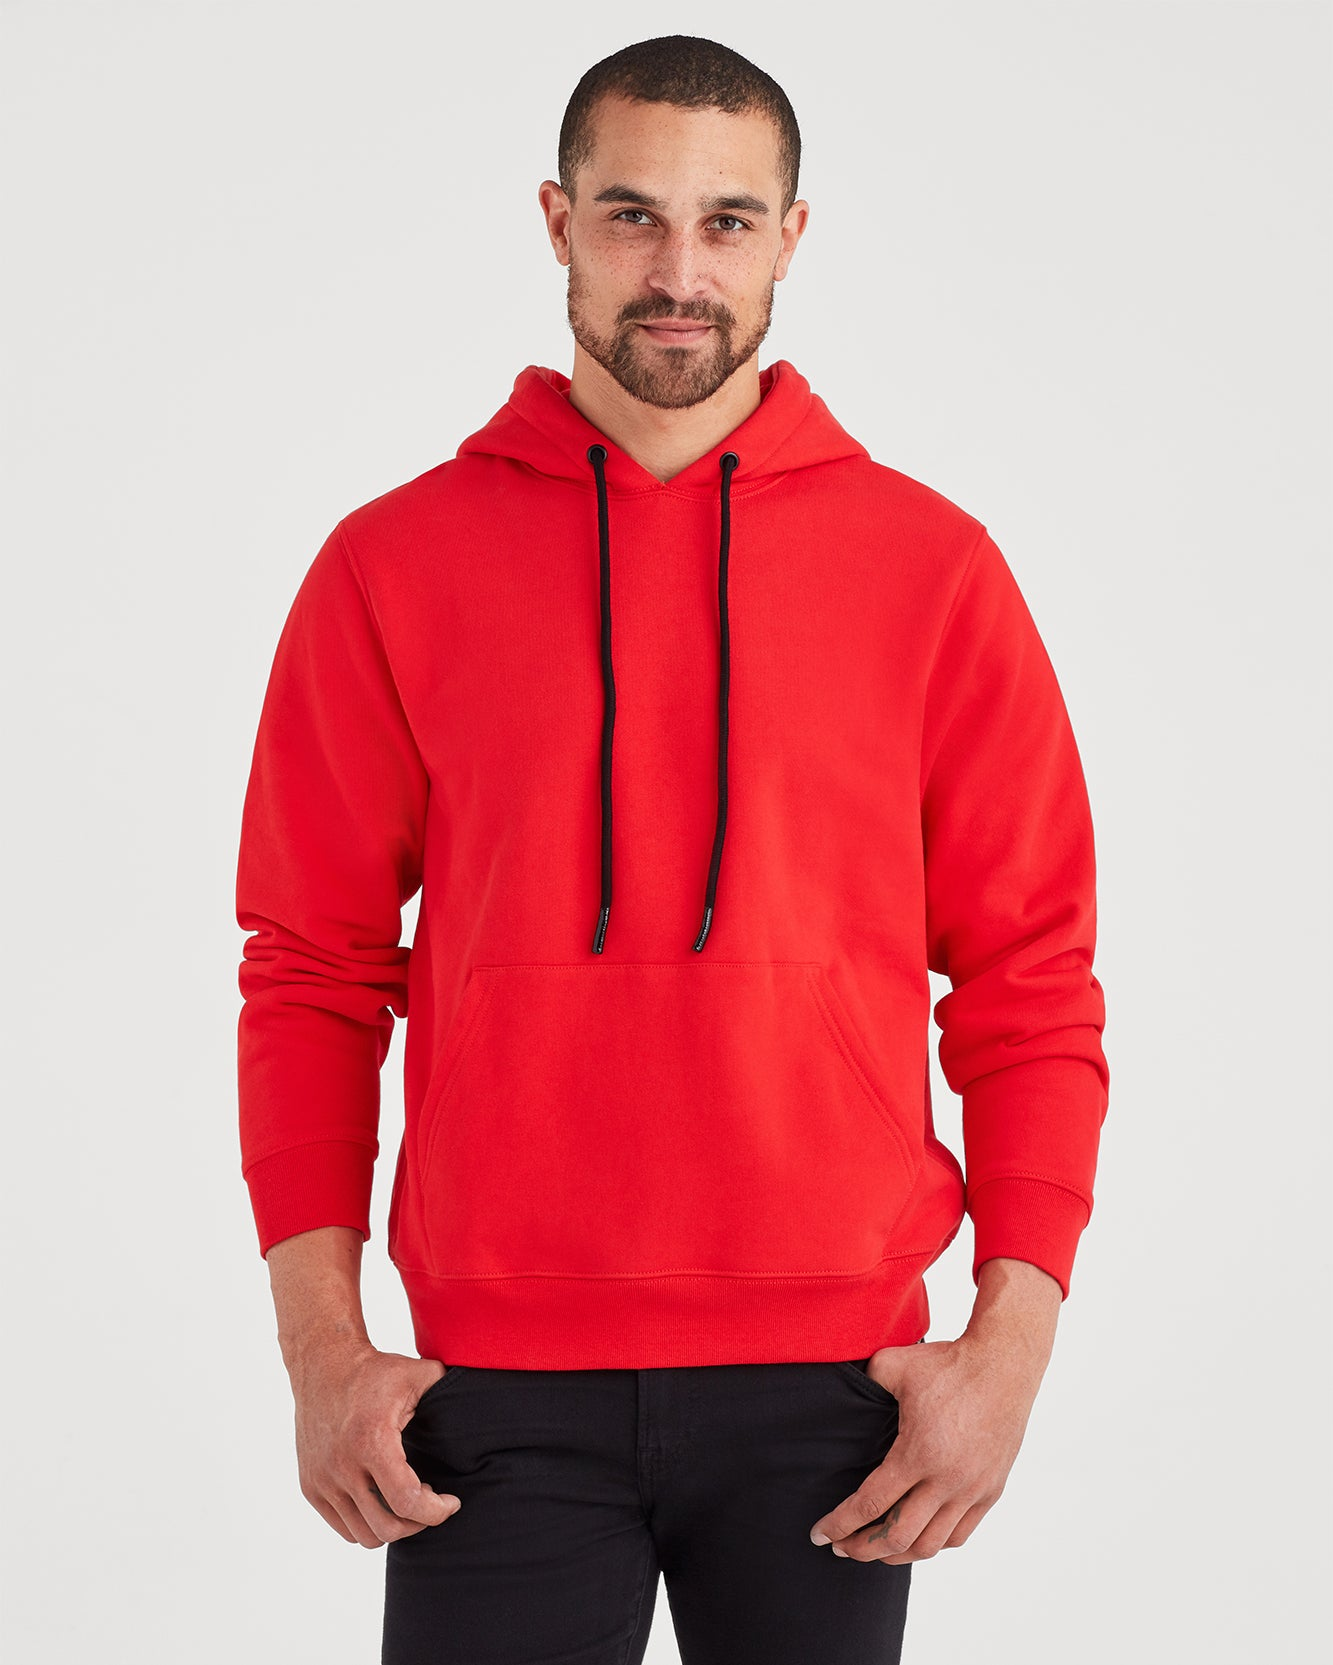 Image of Pull Over Hoodie in Red Flame